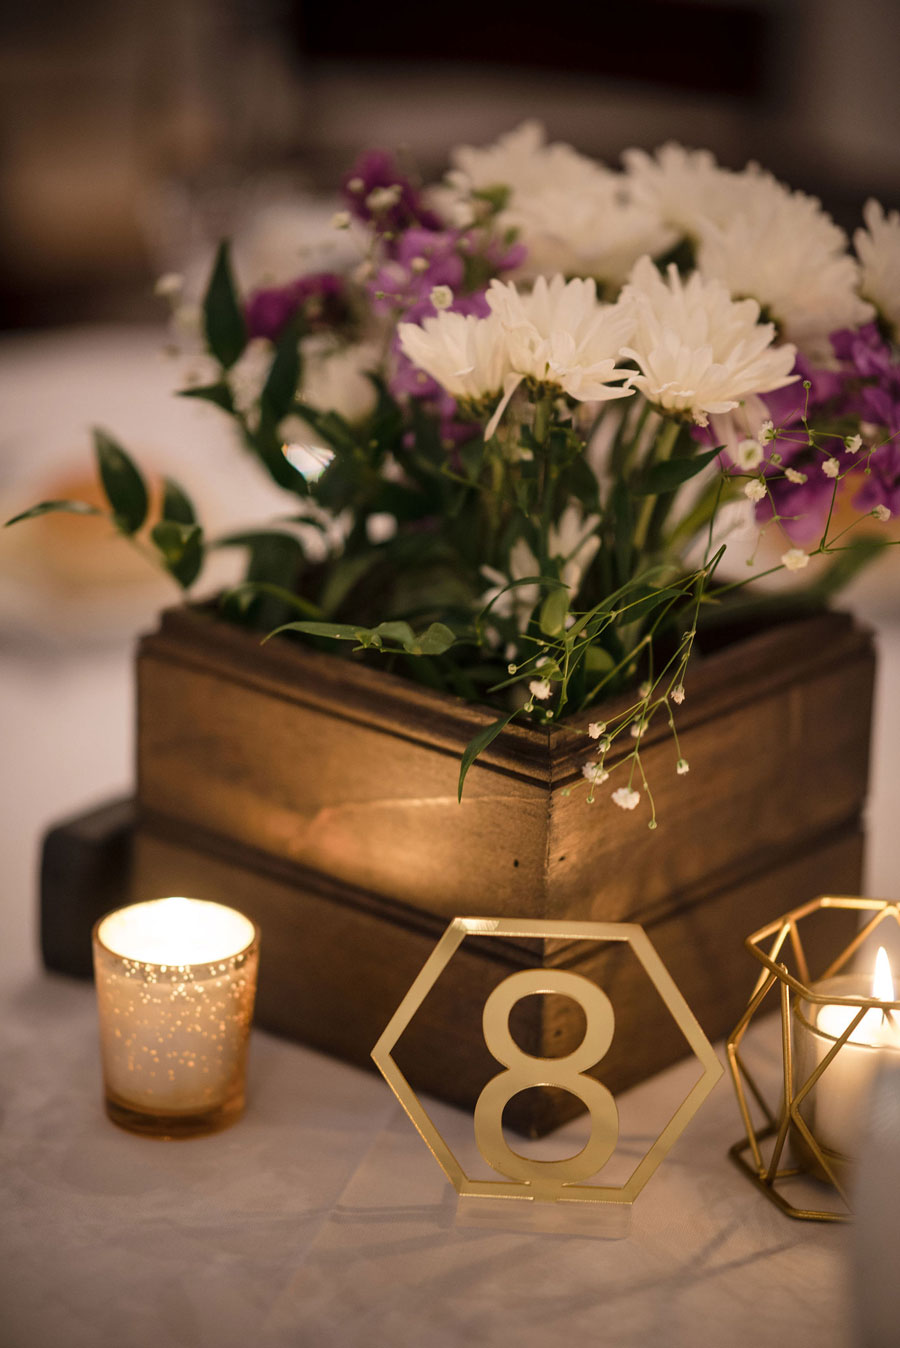 Brushed metal table numbers with floral arrangements